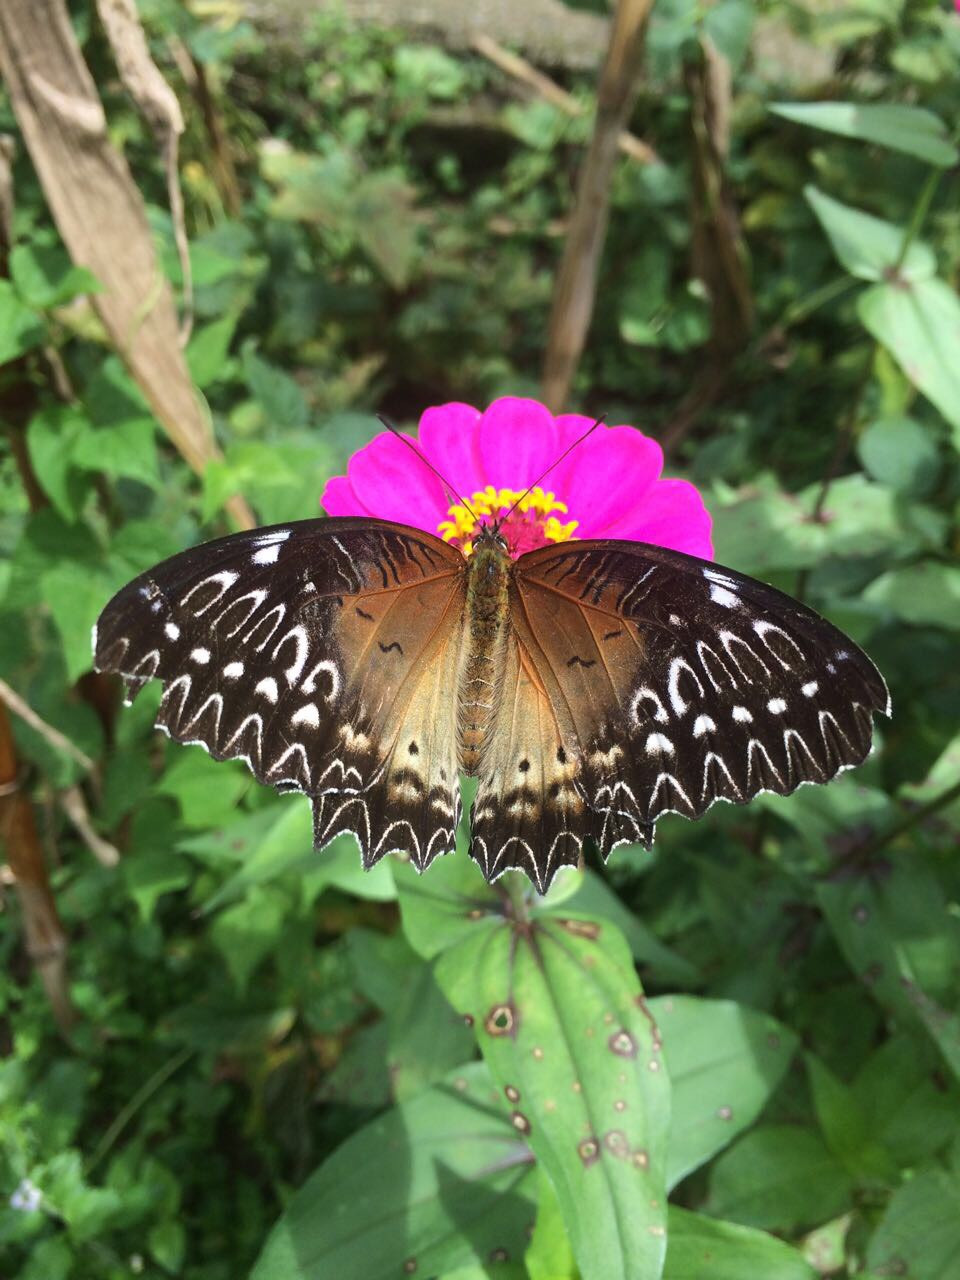 fotoCaption: Red lacewing butterfly (Pic: Nosang M Limboo)